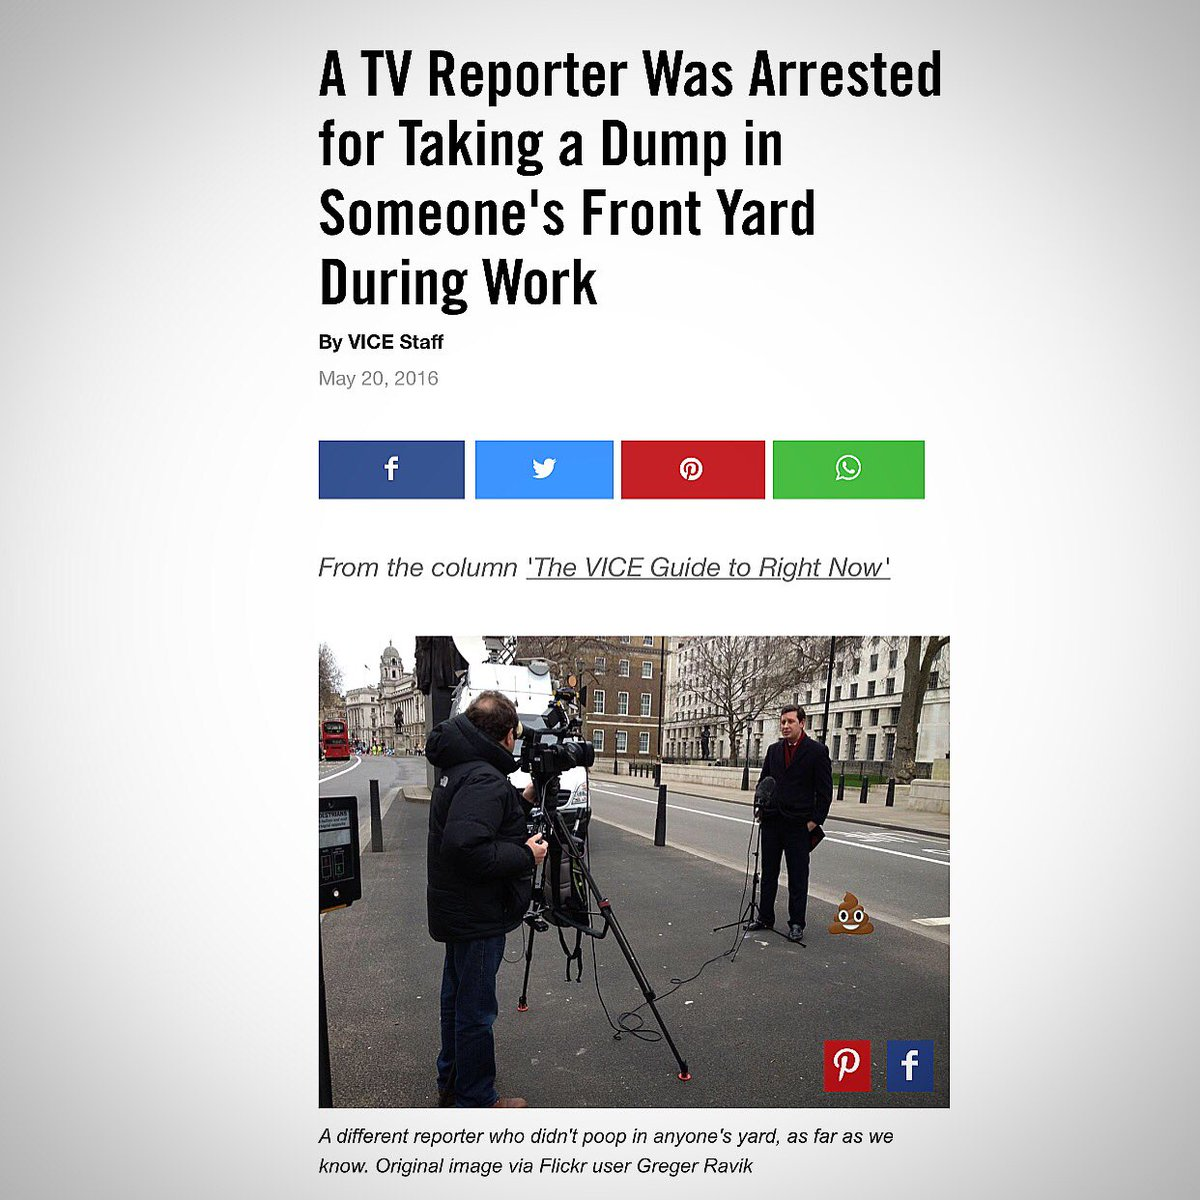 Of all the reporters, in all the countries, in all the world, they chose me to illustrate this story. Cheers @VICE https://t.co/4fo9zBzgpn